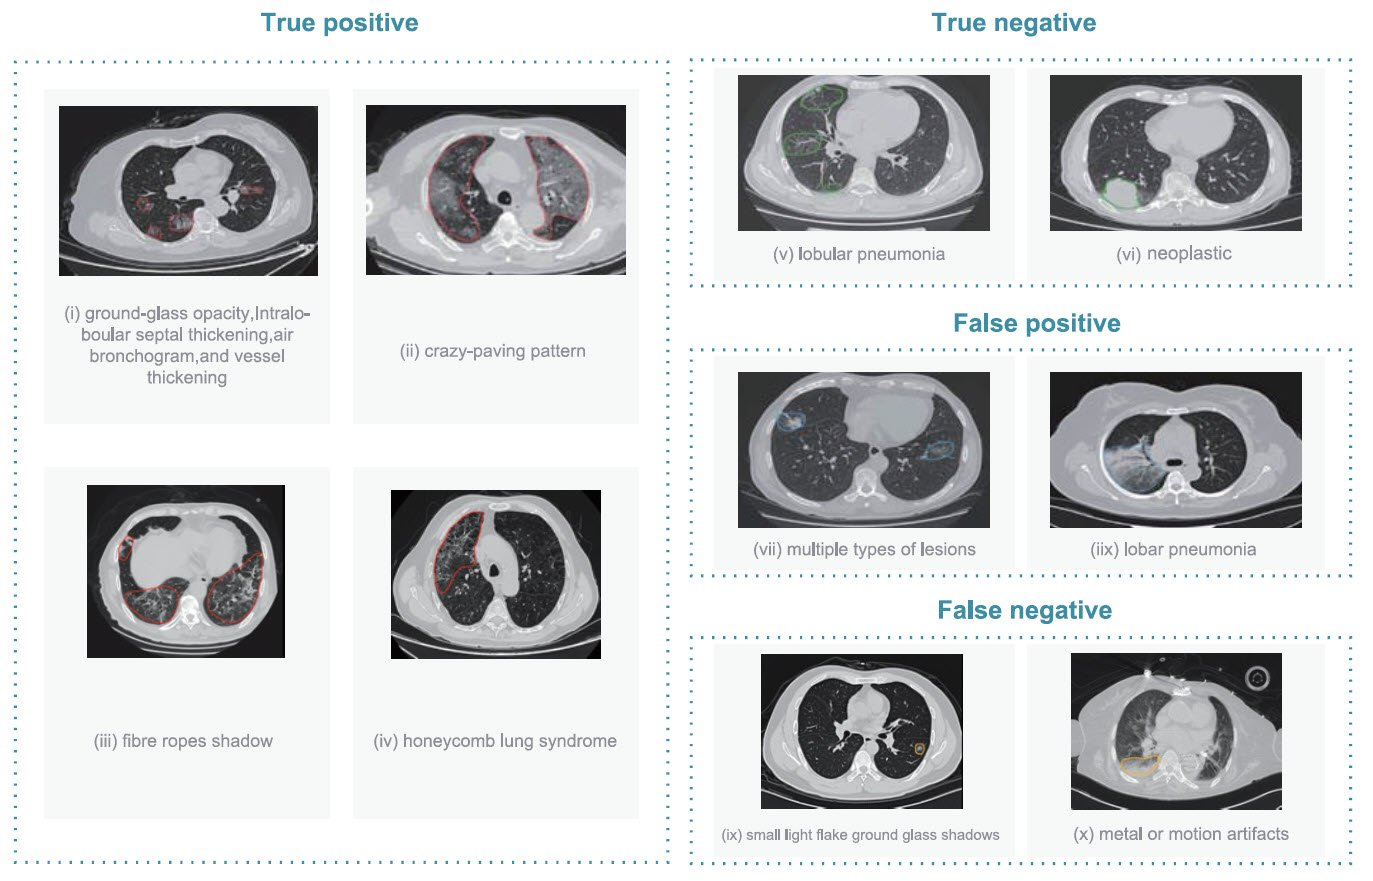 AI-assisted diagnosis for COVID-19 from computed tomography scans